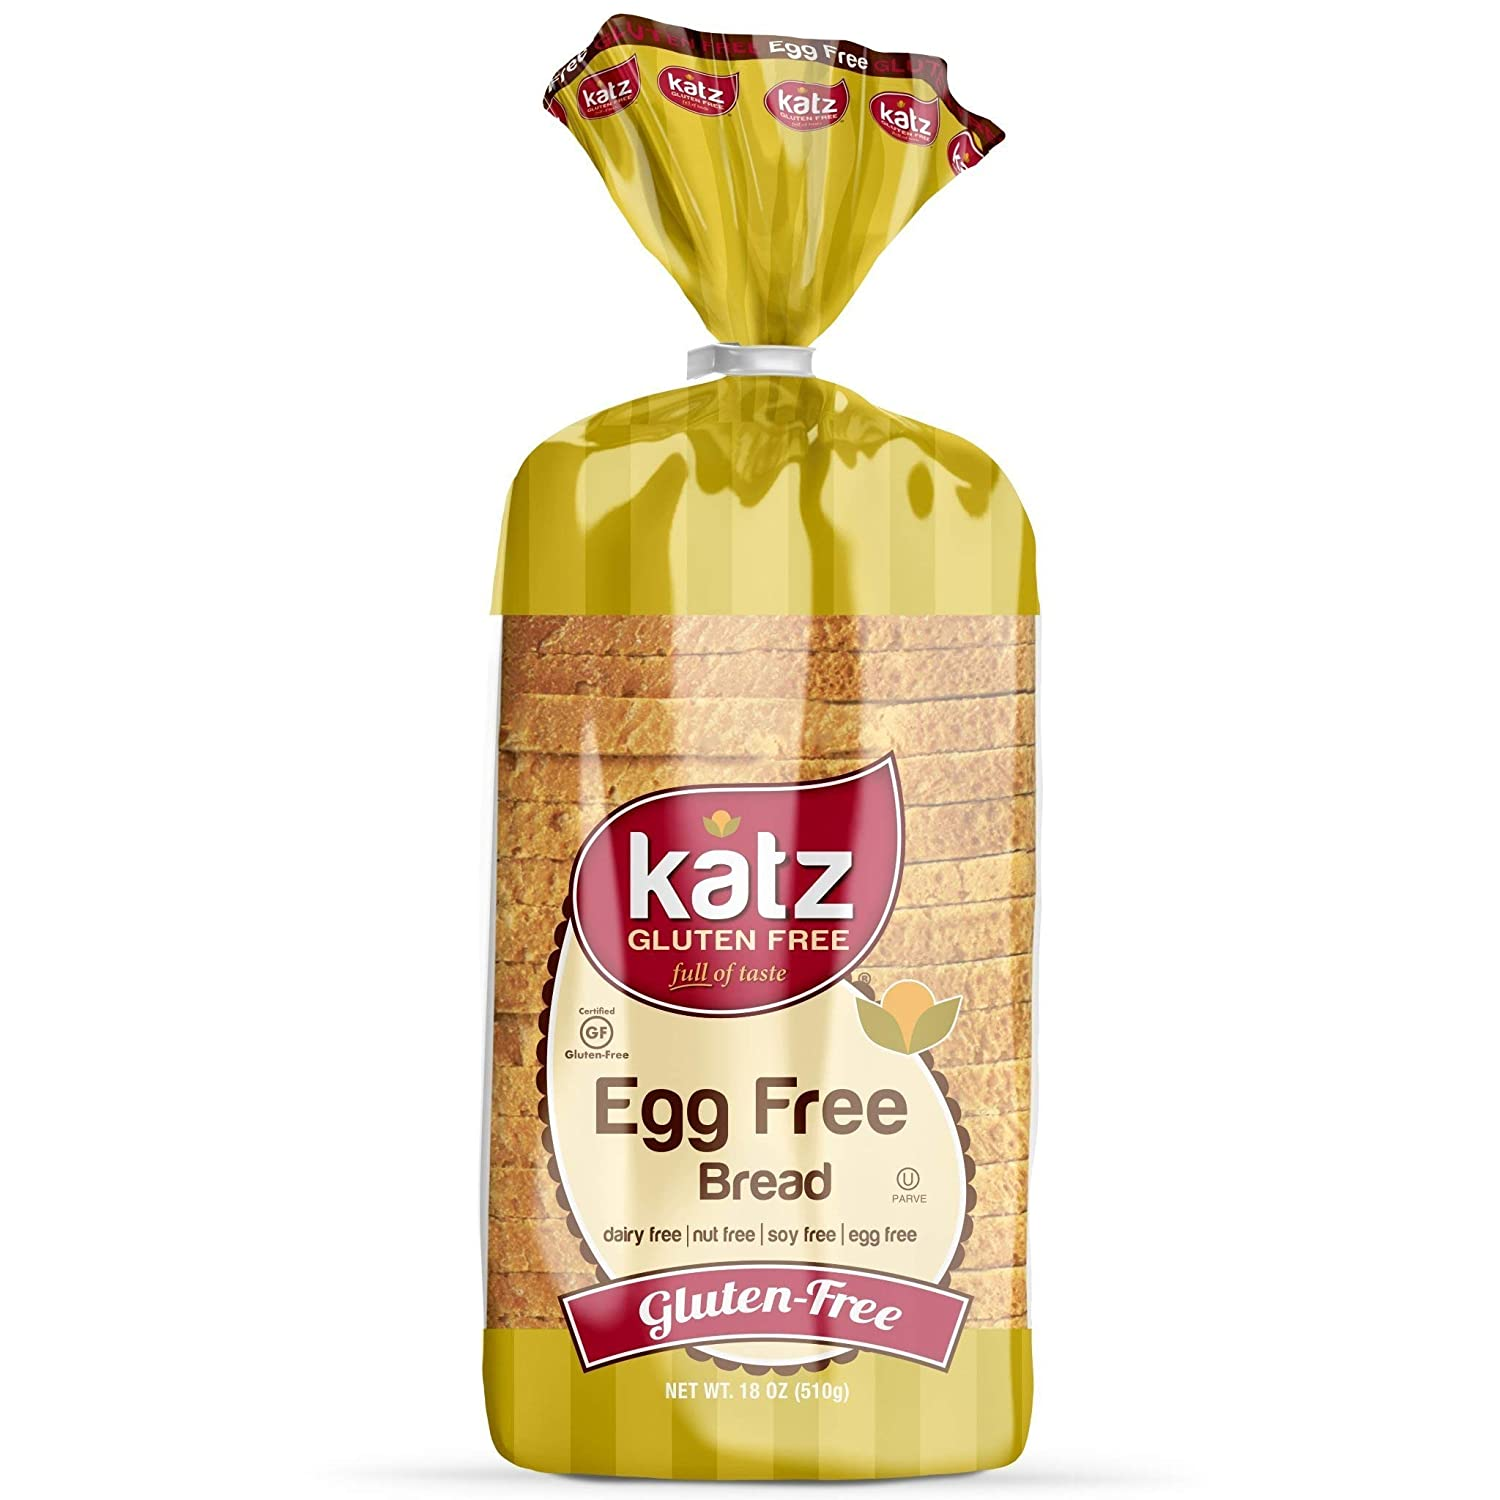 Katz Gluten Free Egg Free Bread | Dairy, Nut, Soy and Gluten Free | Kosher (1 Pack of 1 Sliced Loaf, 18 Ounce)